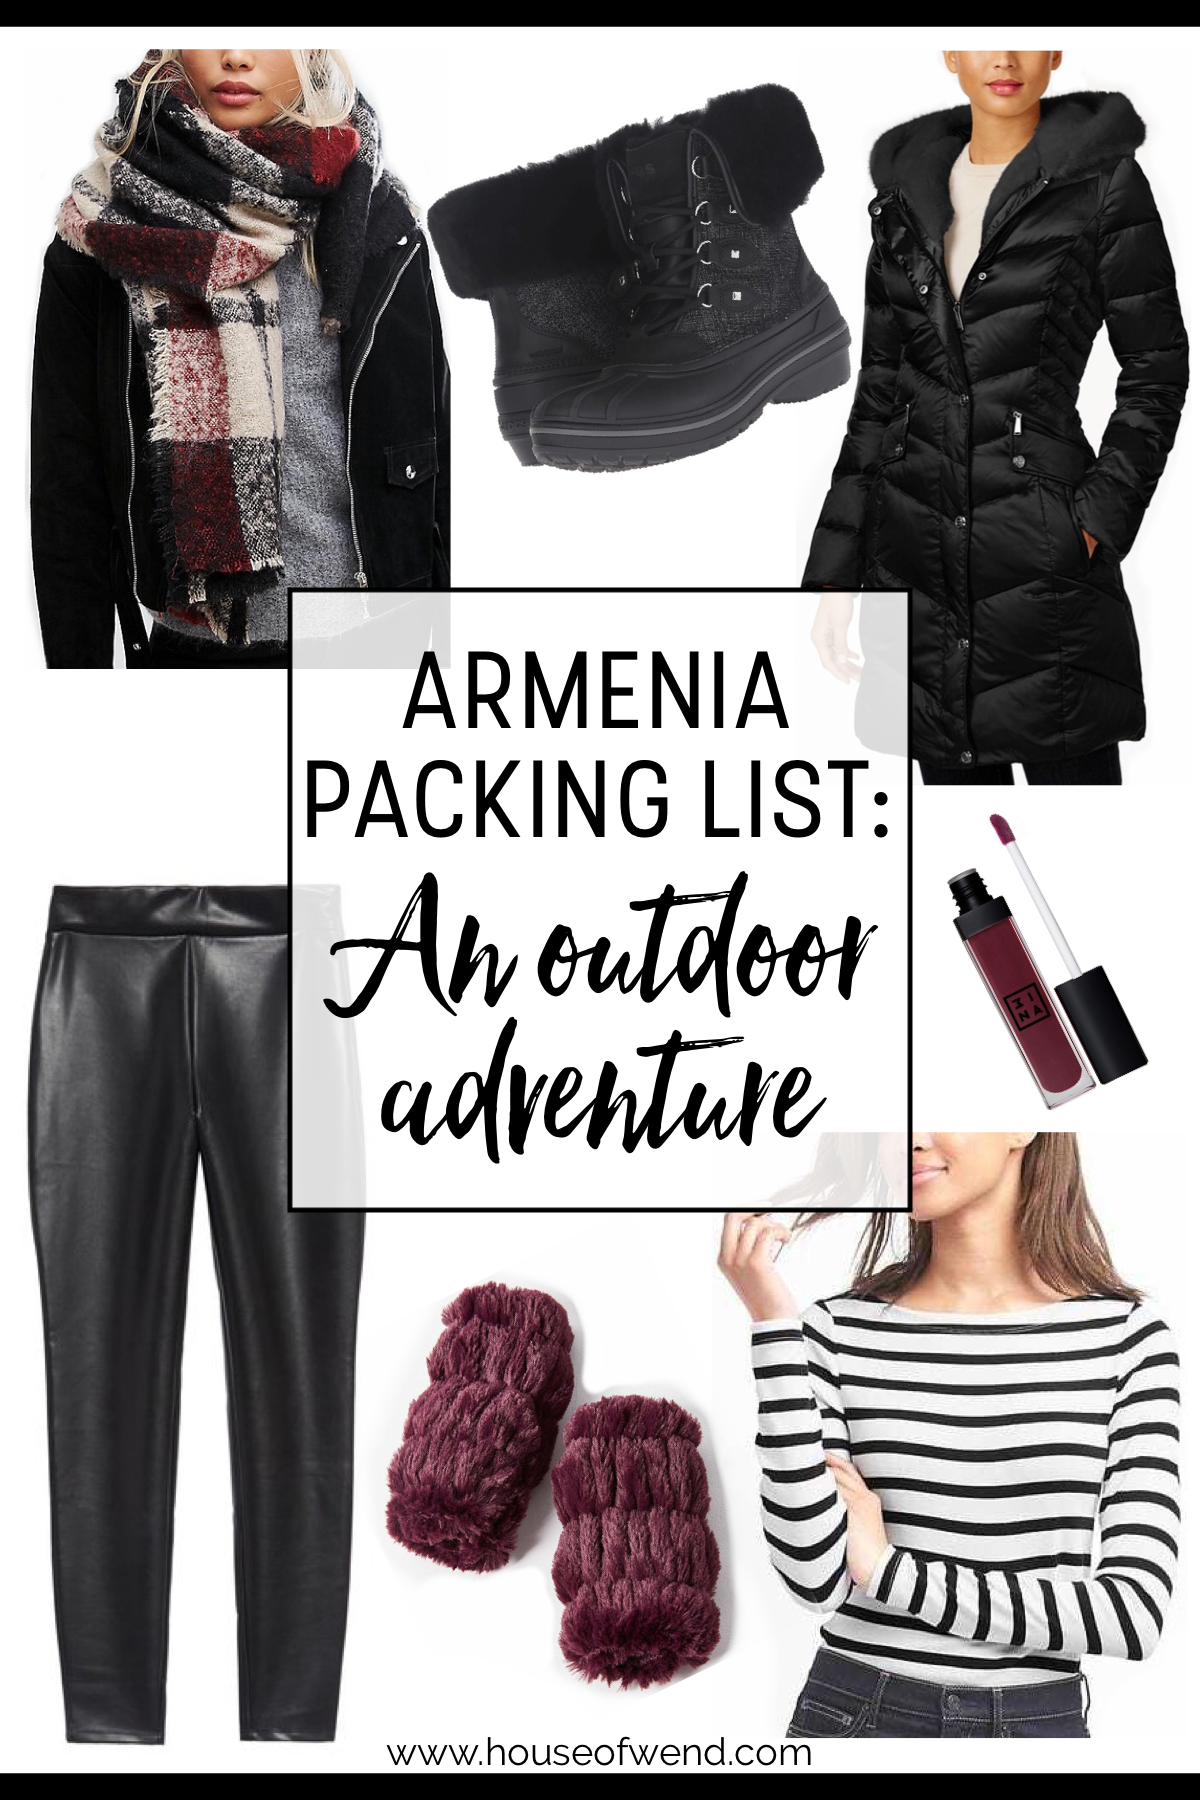 Armenia packing list for an outdoor adventure